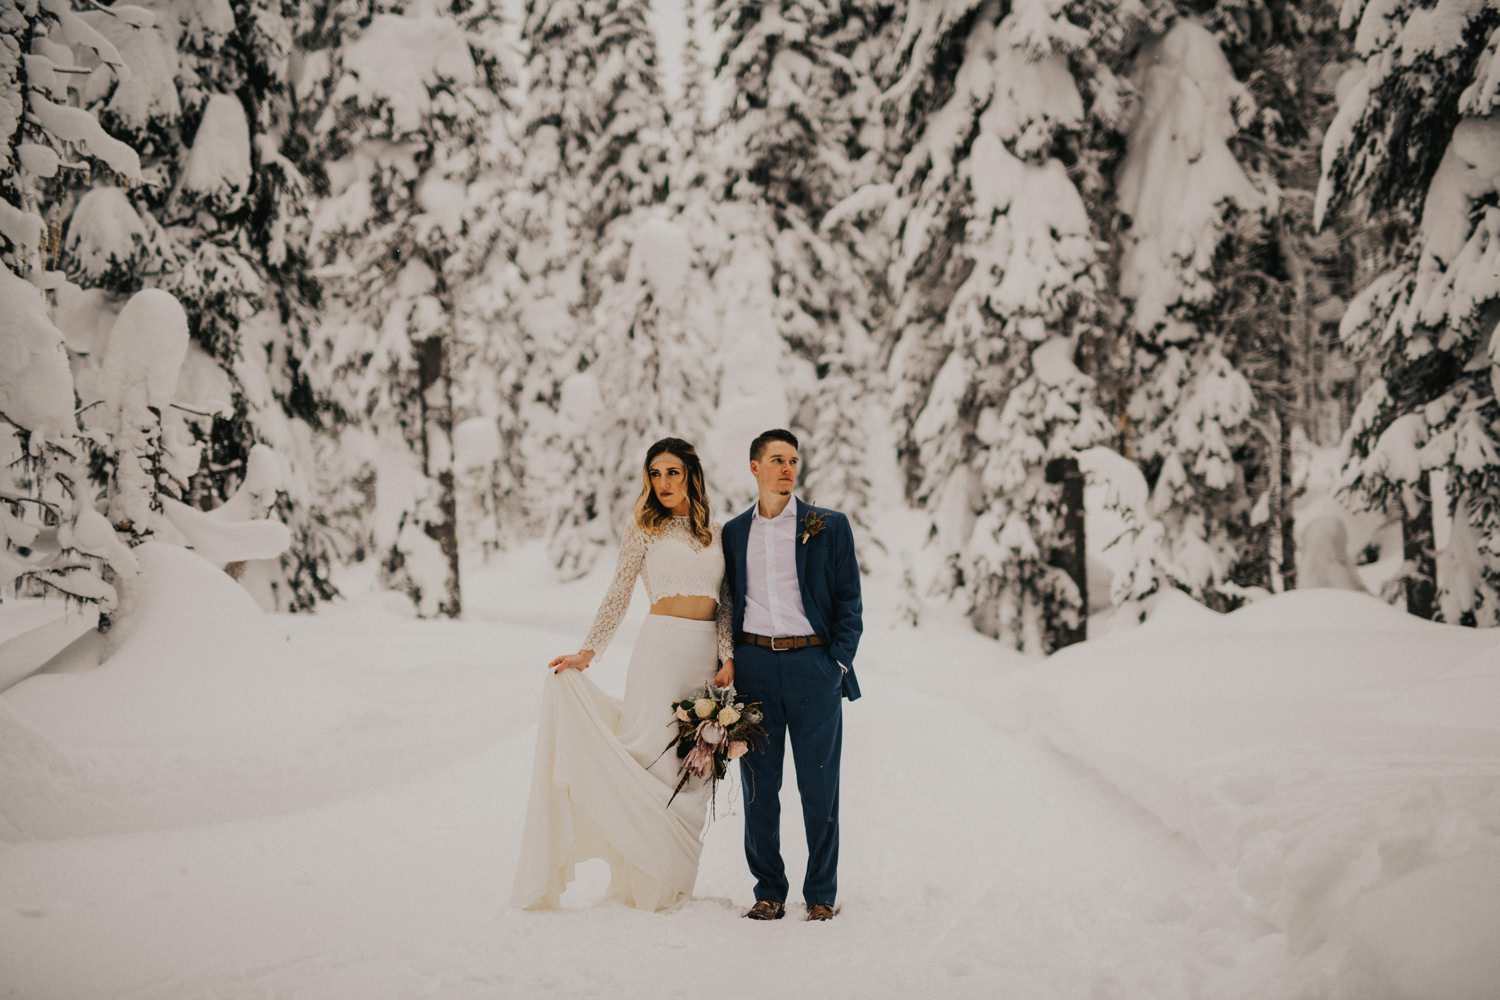 Okanagan Winter Elopement - Joelsview Photography_0033